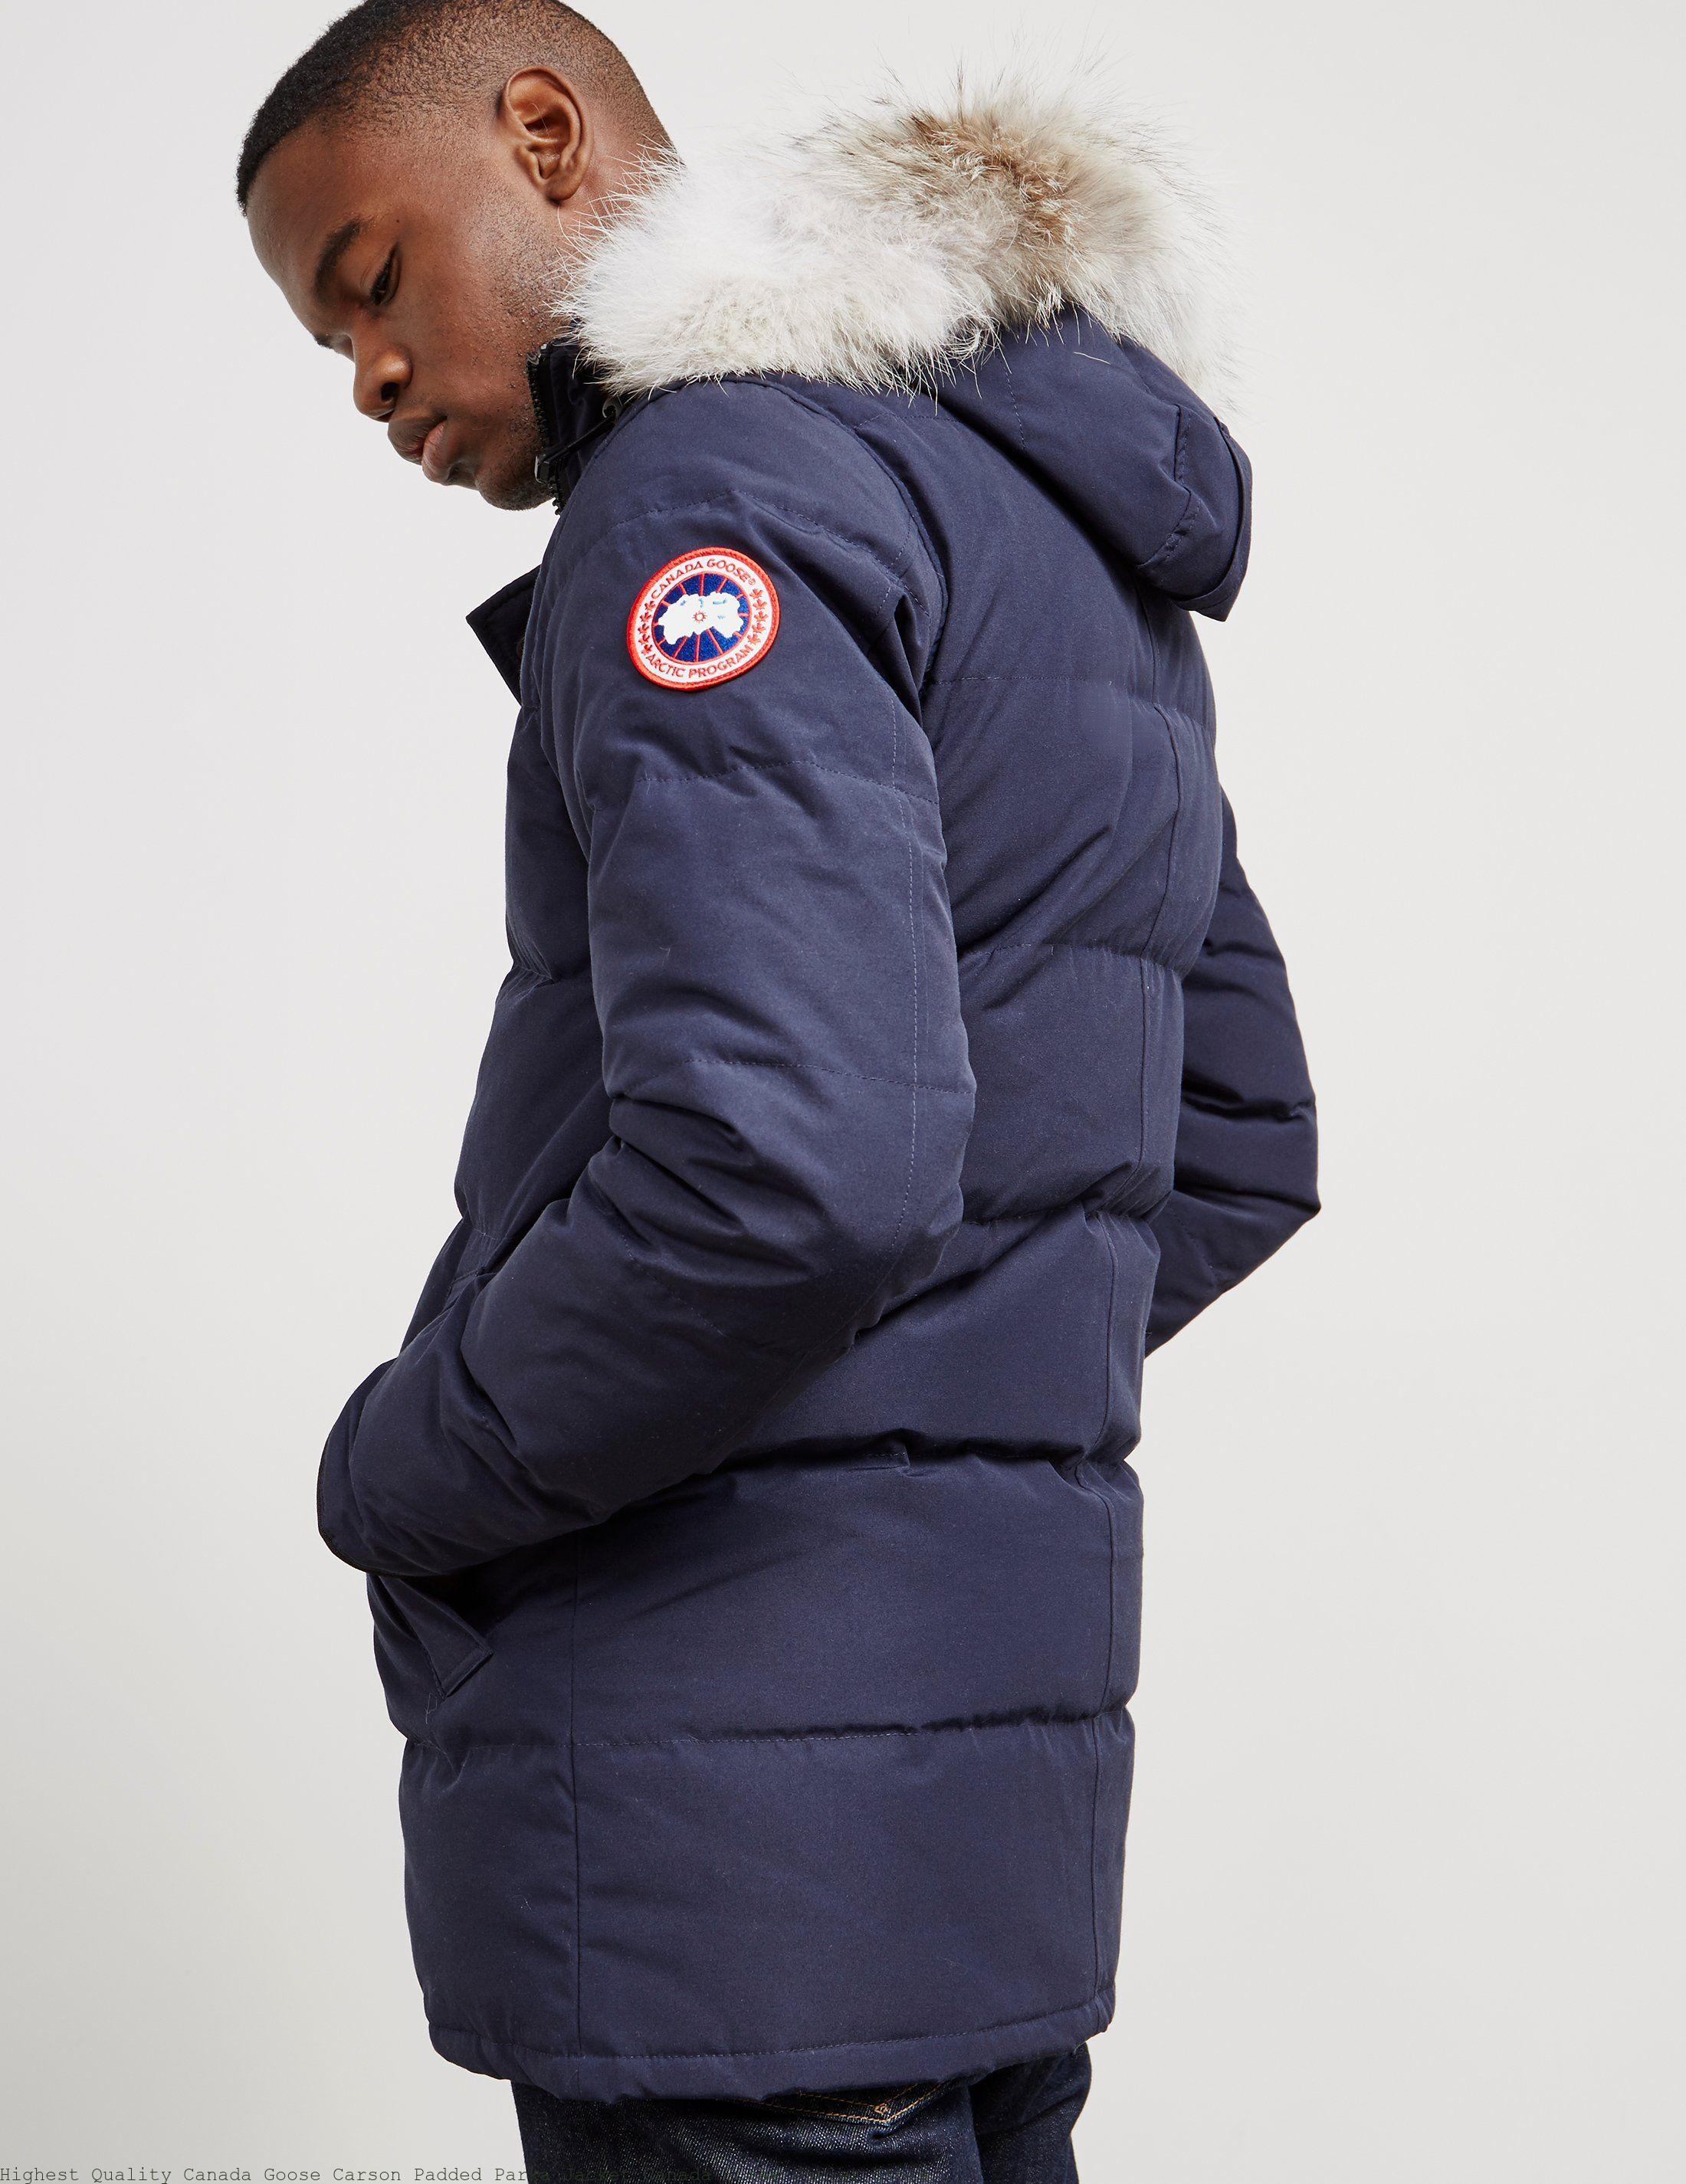 Highest Quality Canada Goose Carson Padded Parka Jacket Canada Goose Outlet  Store 3bc42ac20fbf